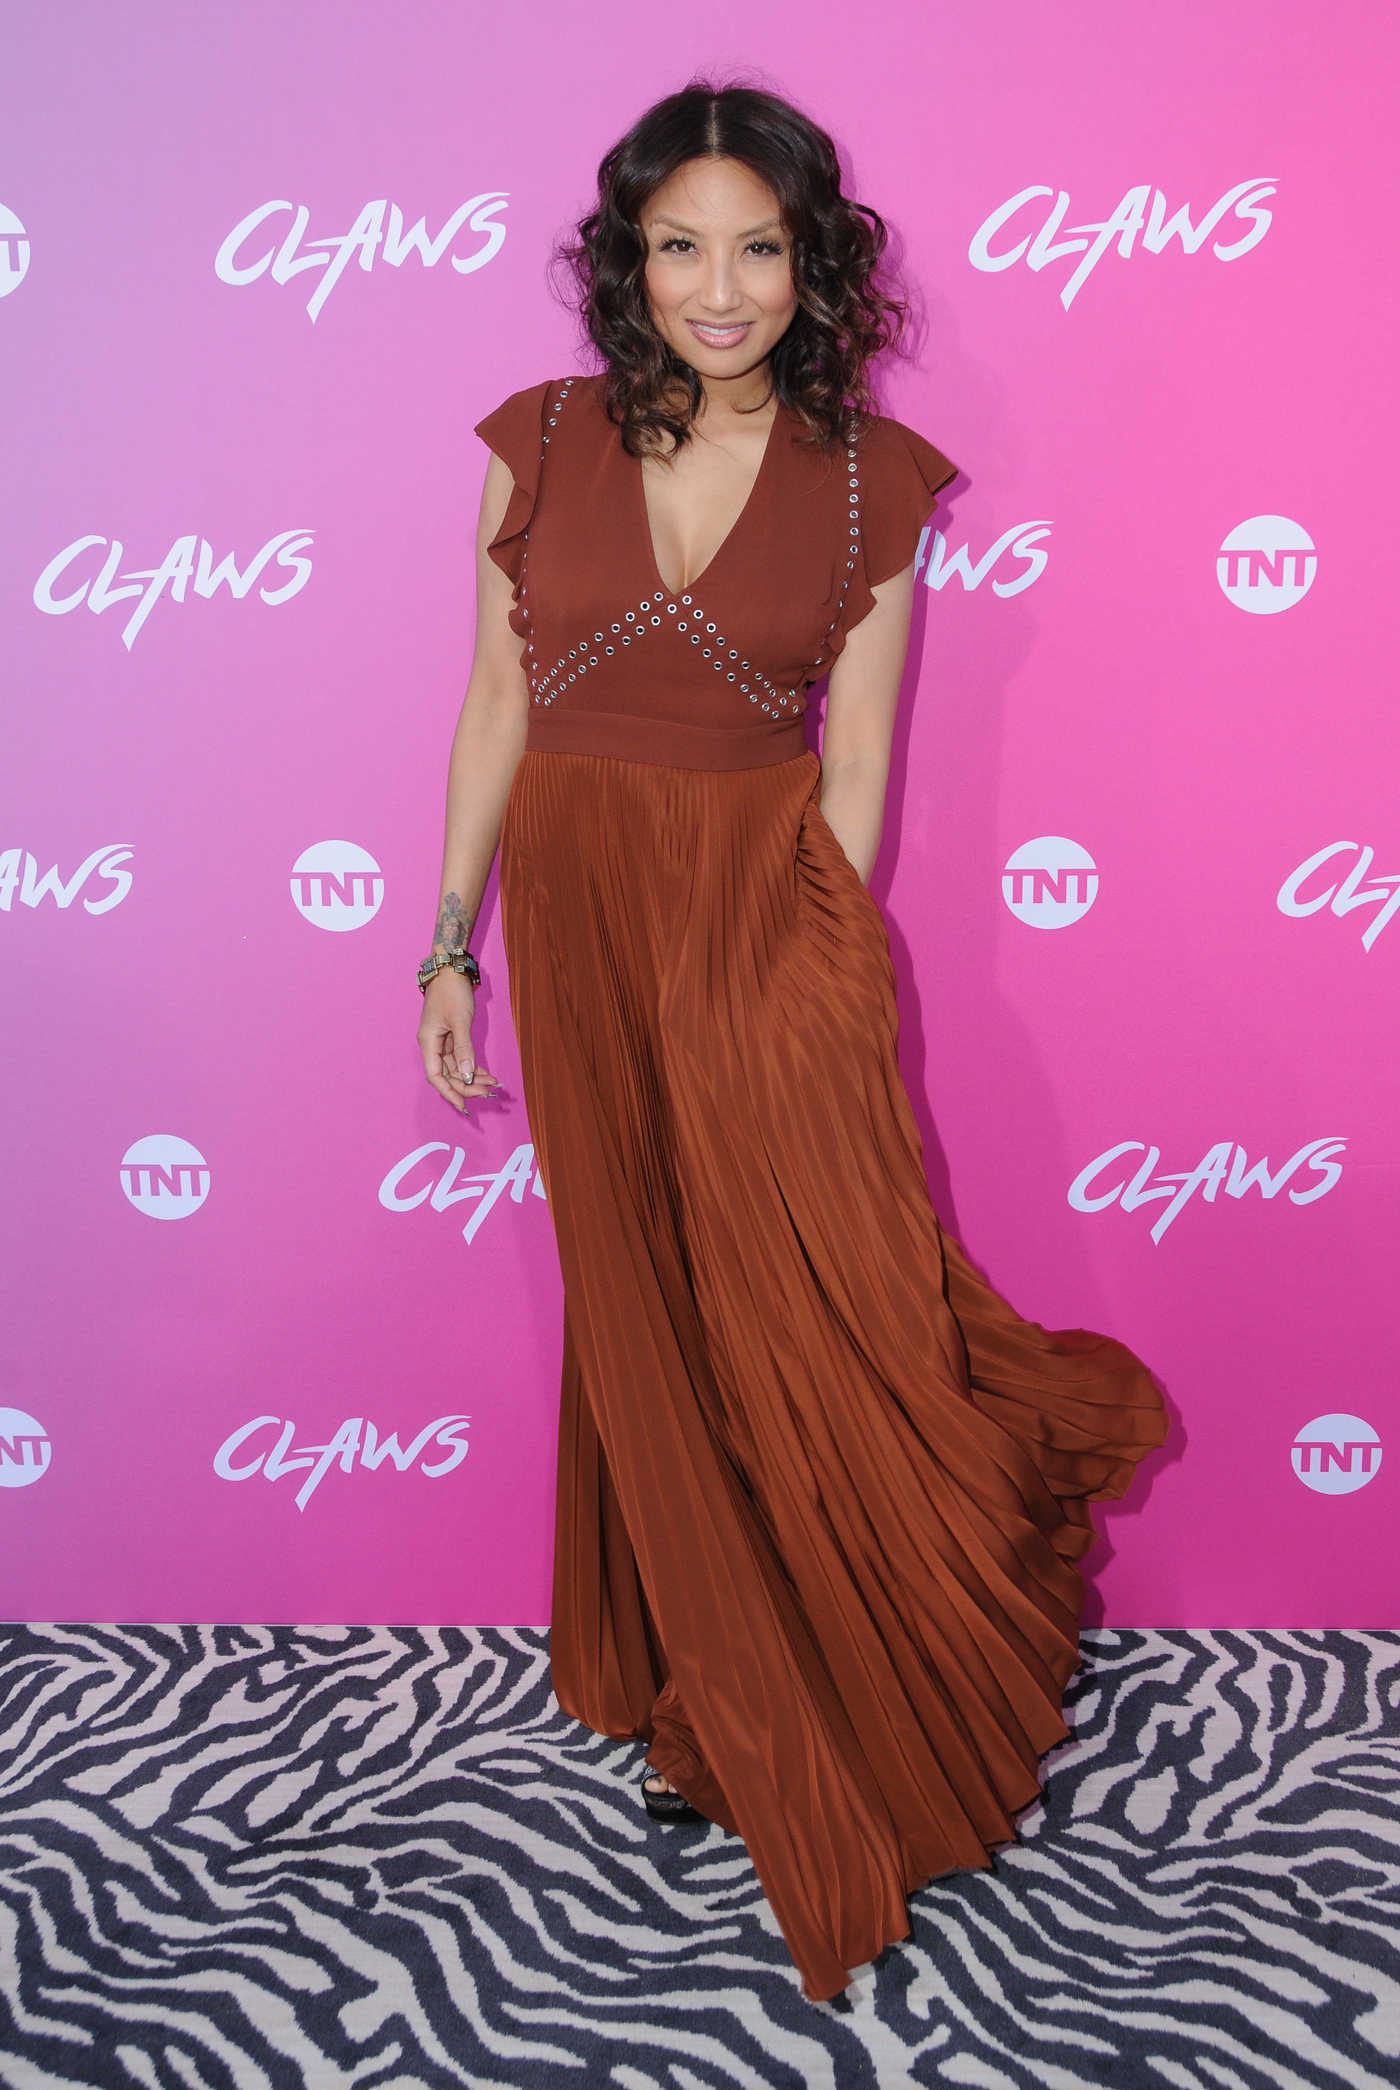 Jeannie Mai at the Claws Premiere in Hollywood 01/06/2017